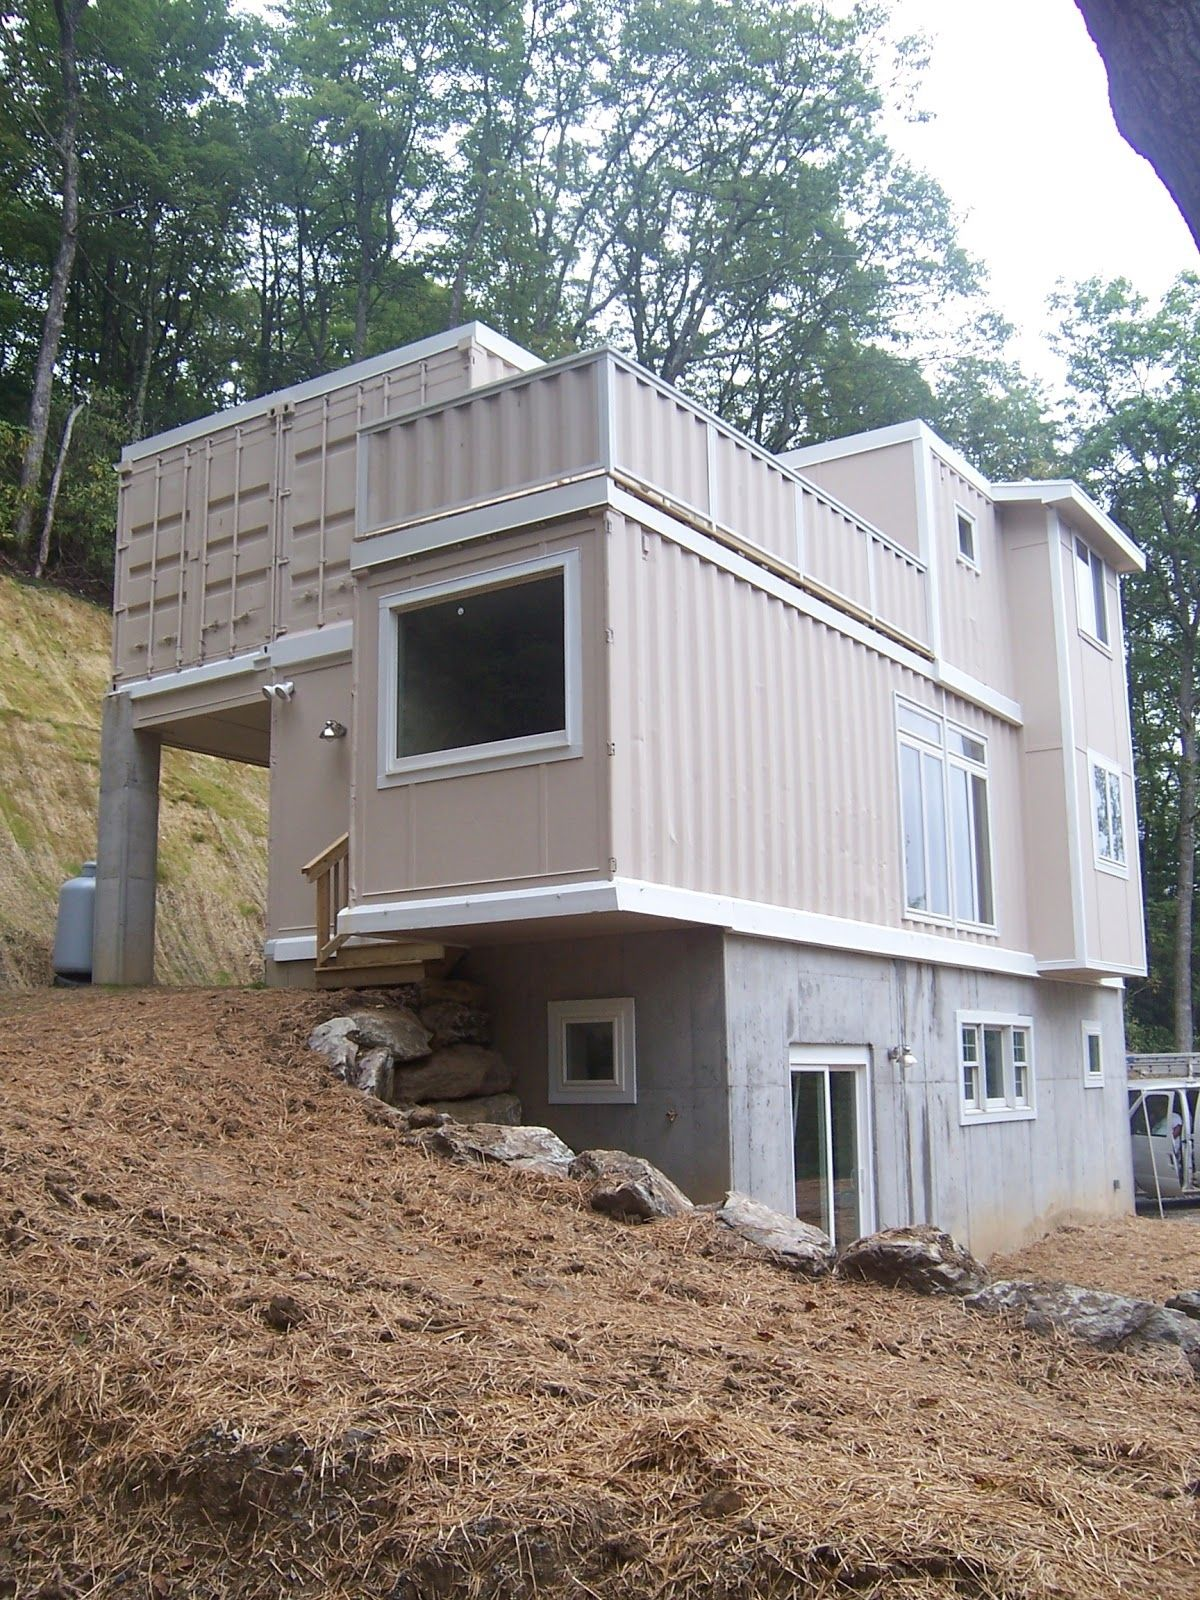 Modern Shipping Container Homes In Shipping Container Home Design Software Artistic Shipping